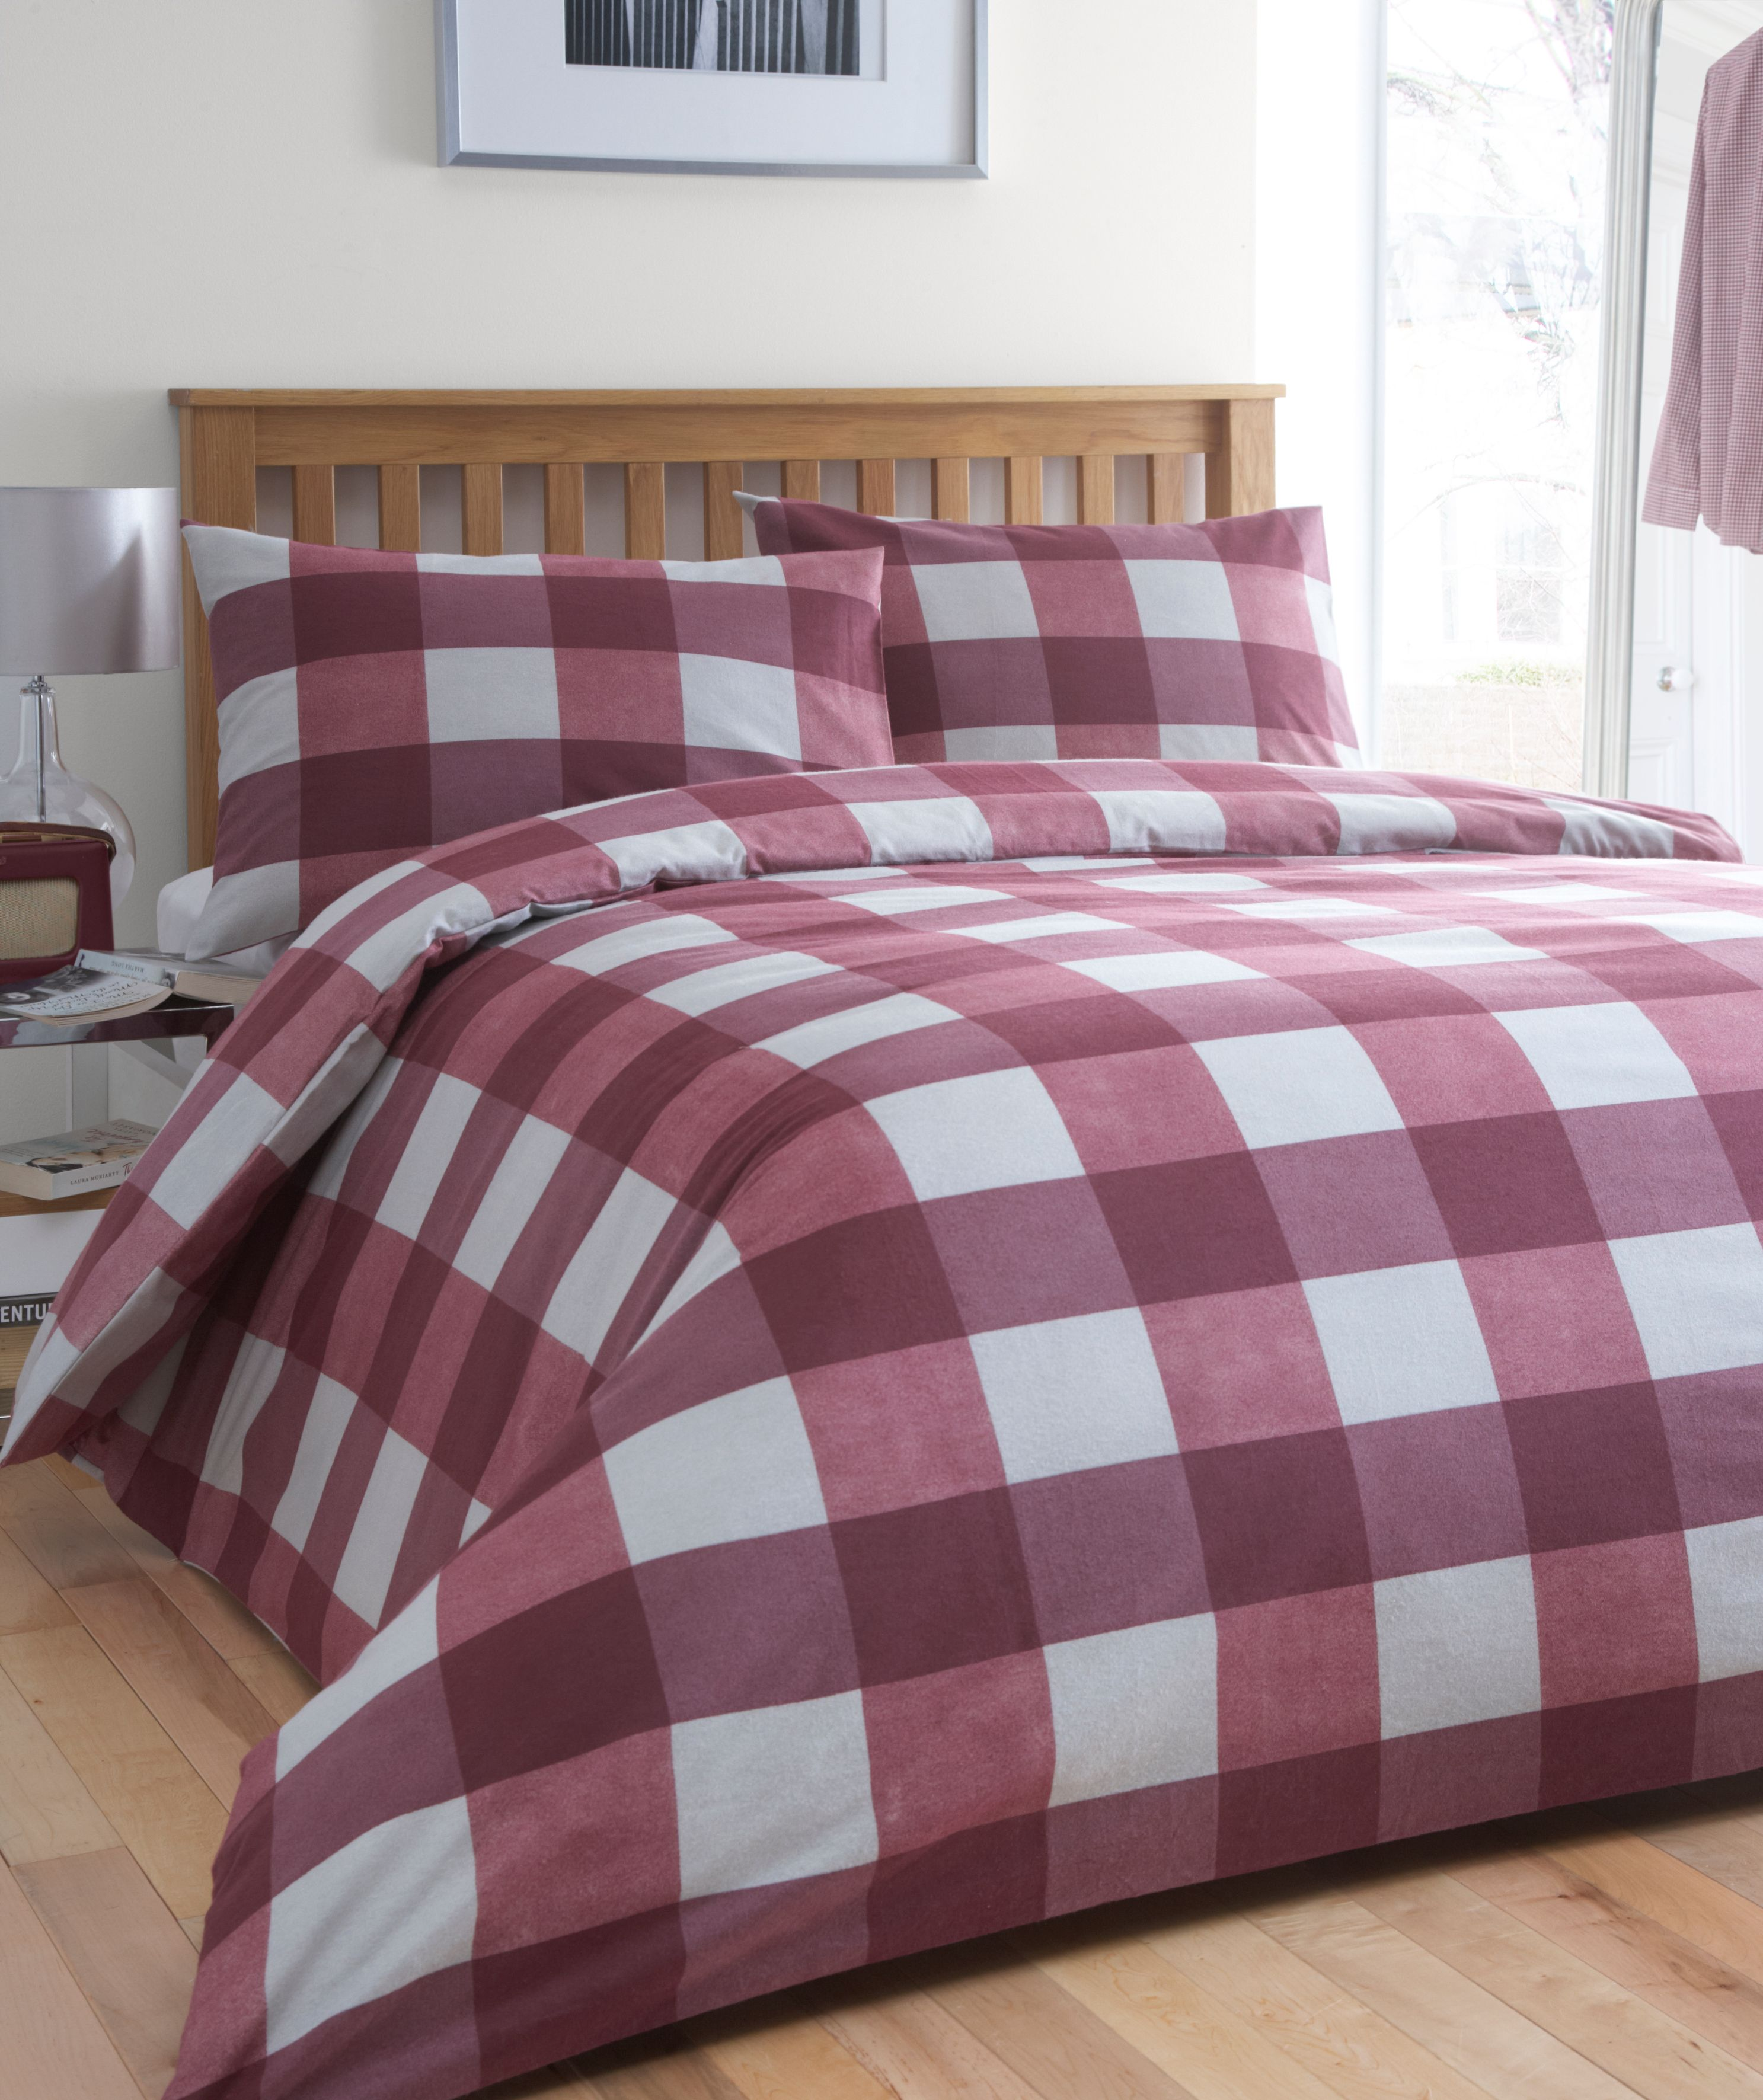 Brushed cotton check superking duvet cover set